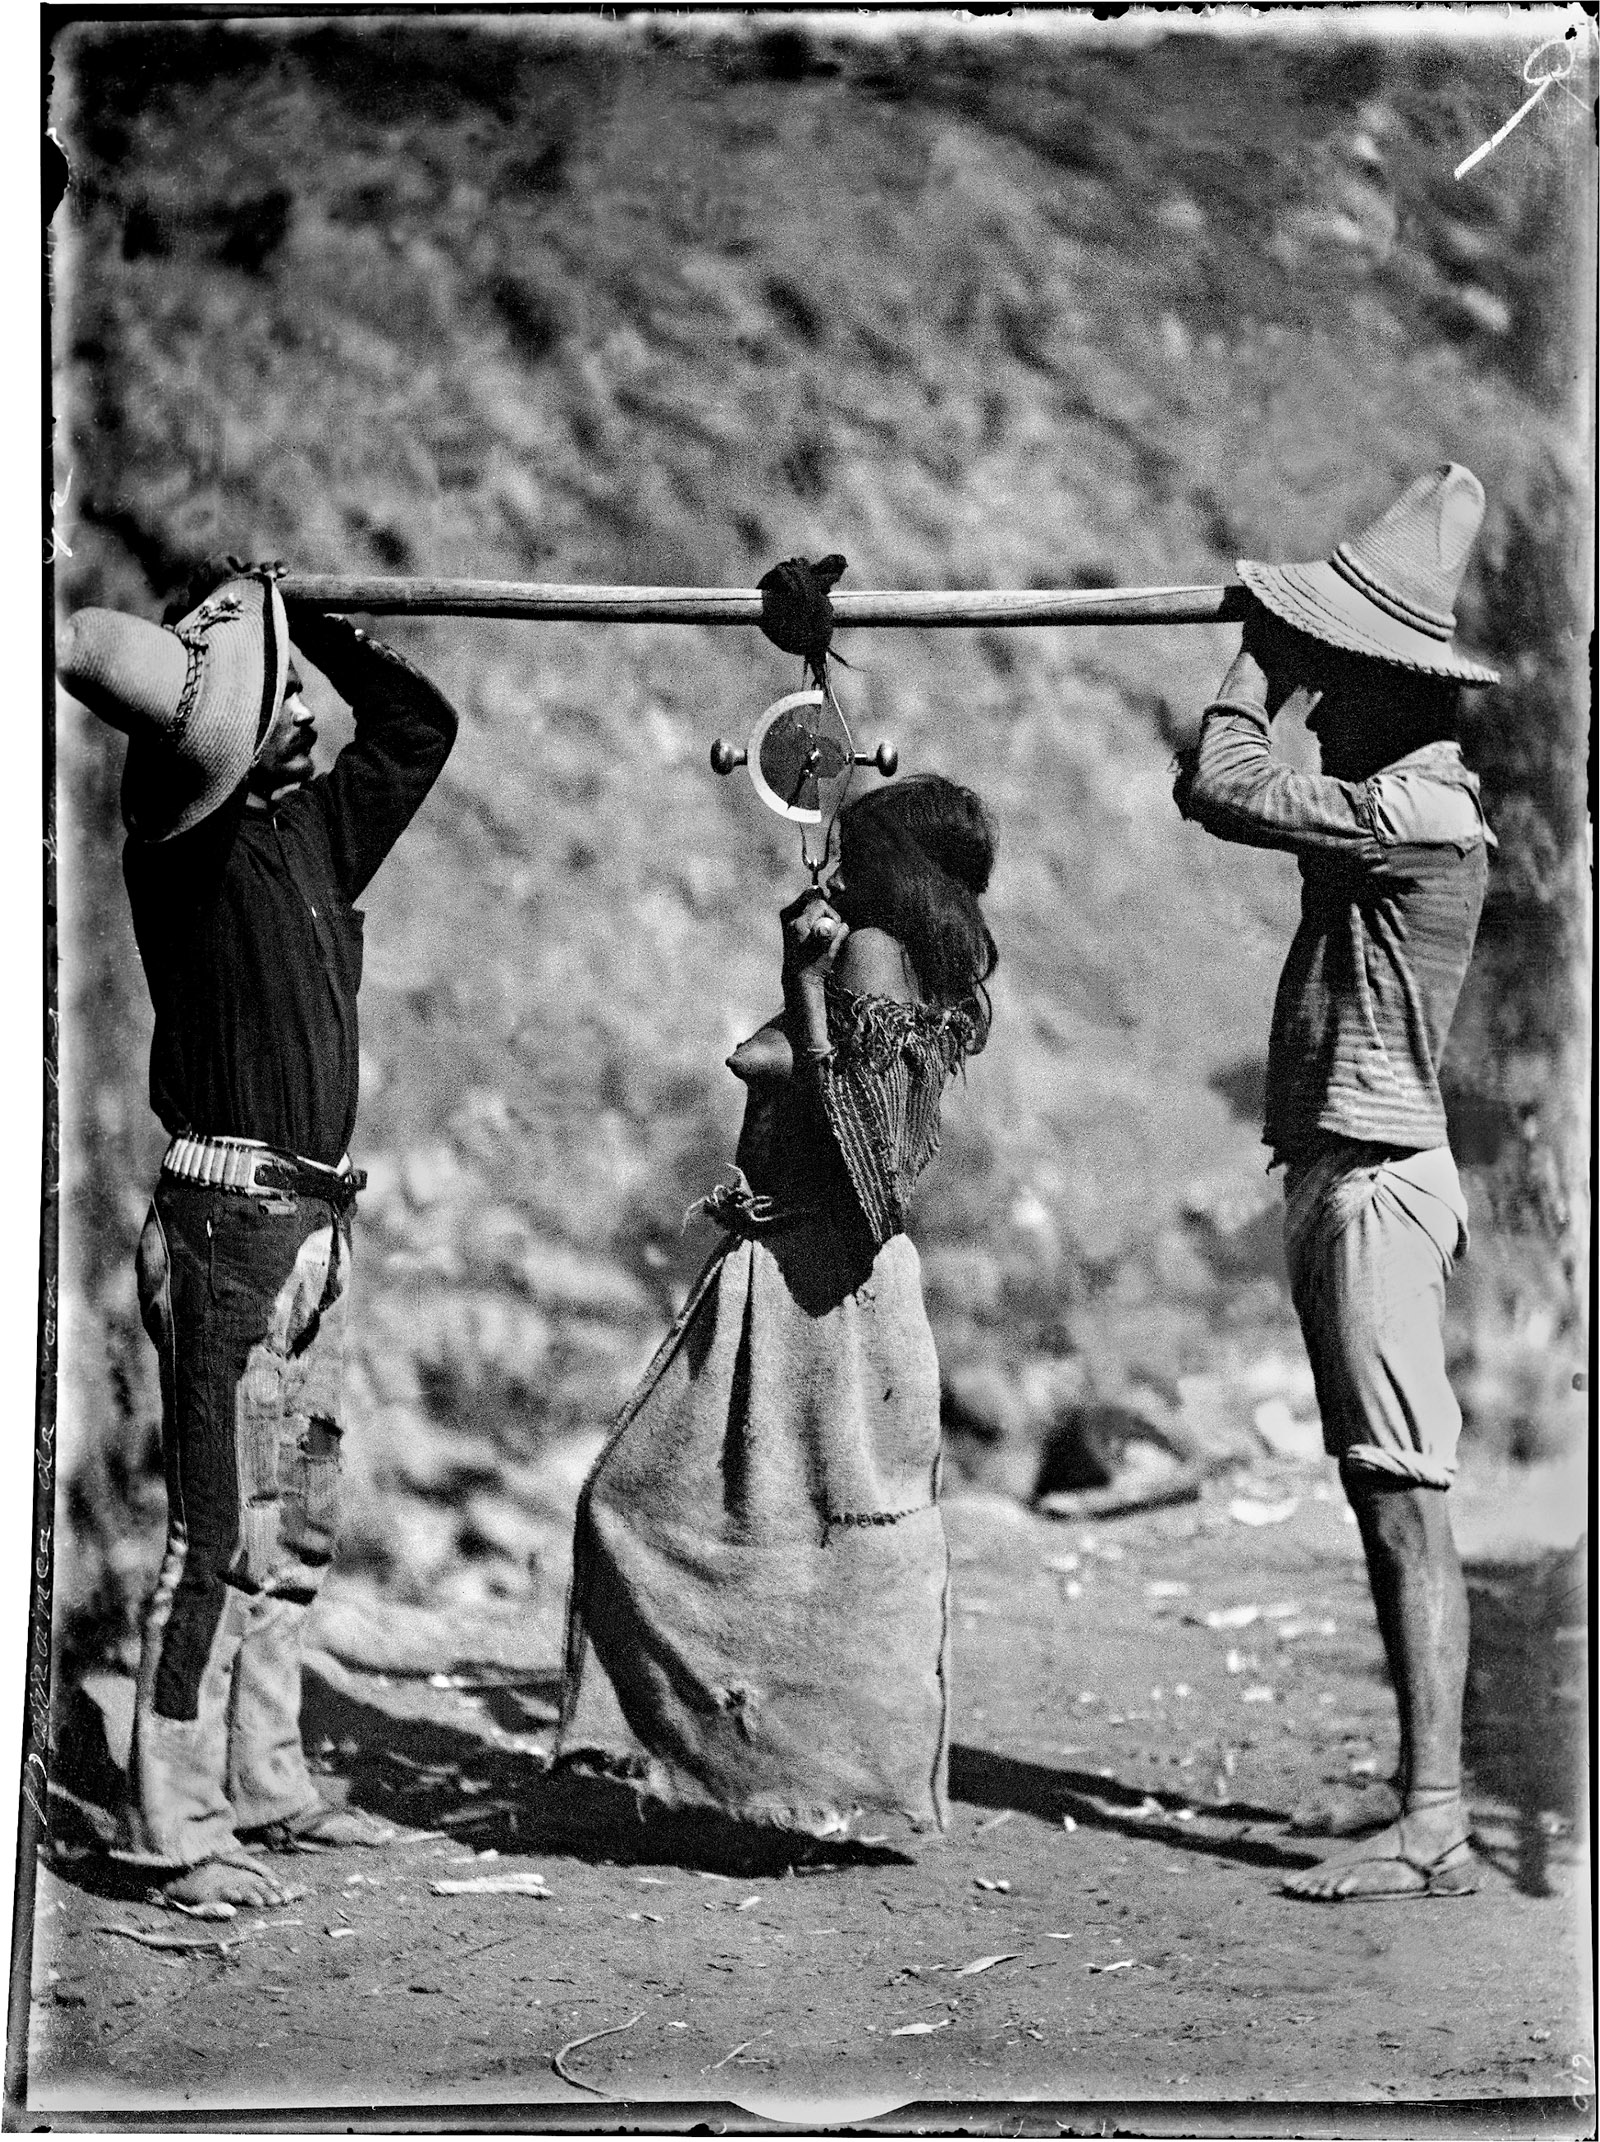 Carl Lumholtz: Tarahumara Woman Being Weighed, Barranca de San Carlos (Sinforosa), Chihuahua, 1892; from Among Unknown Tribes: Rediscovering the Photographs of Explorer Carl Lumholtz. The book includes essays by Bill Broyles, Ann Christine Eek, and others, and is published by the University of Texas Press.